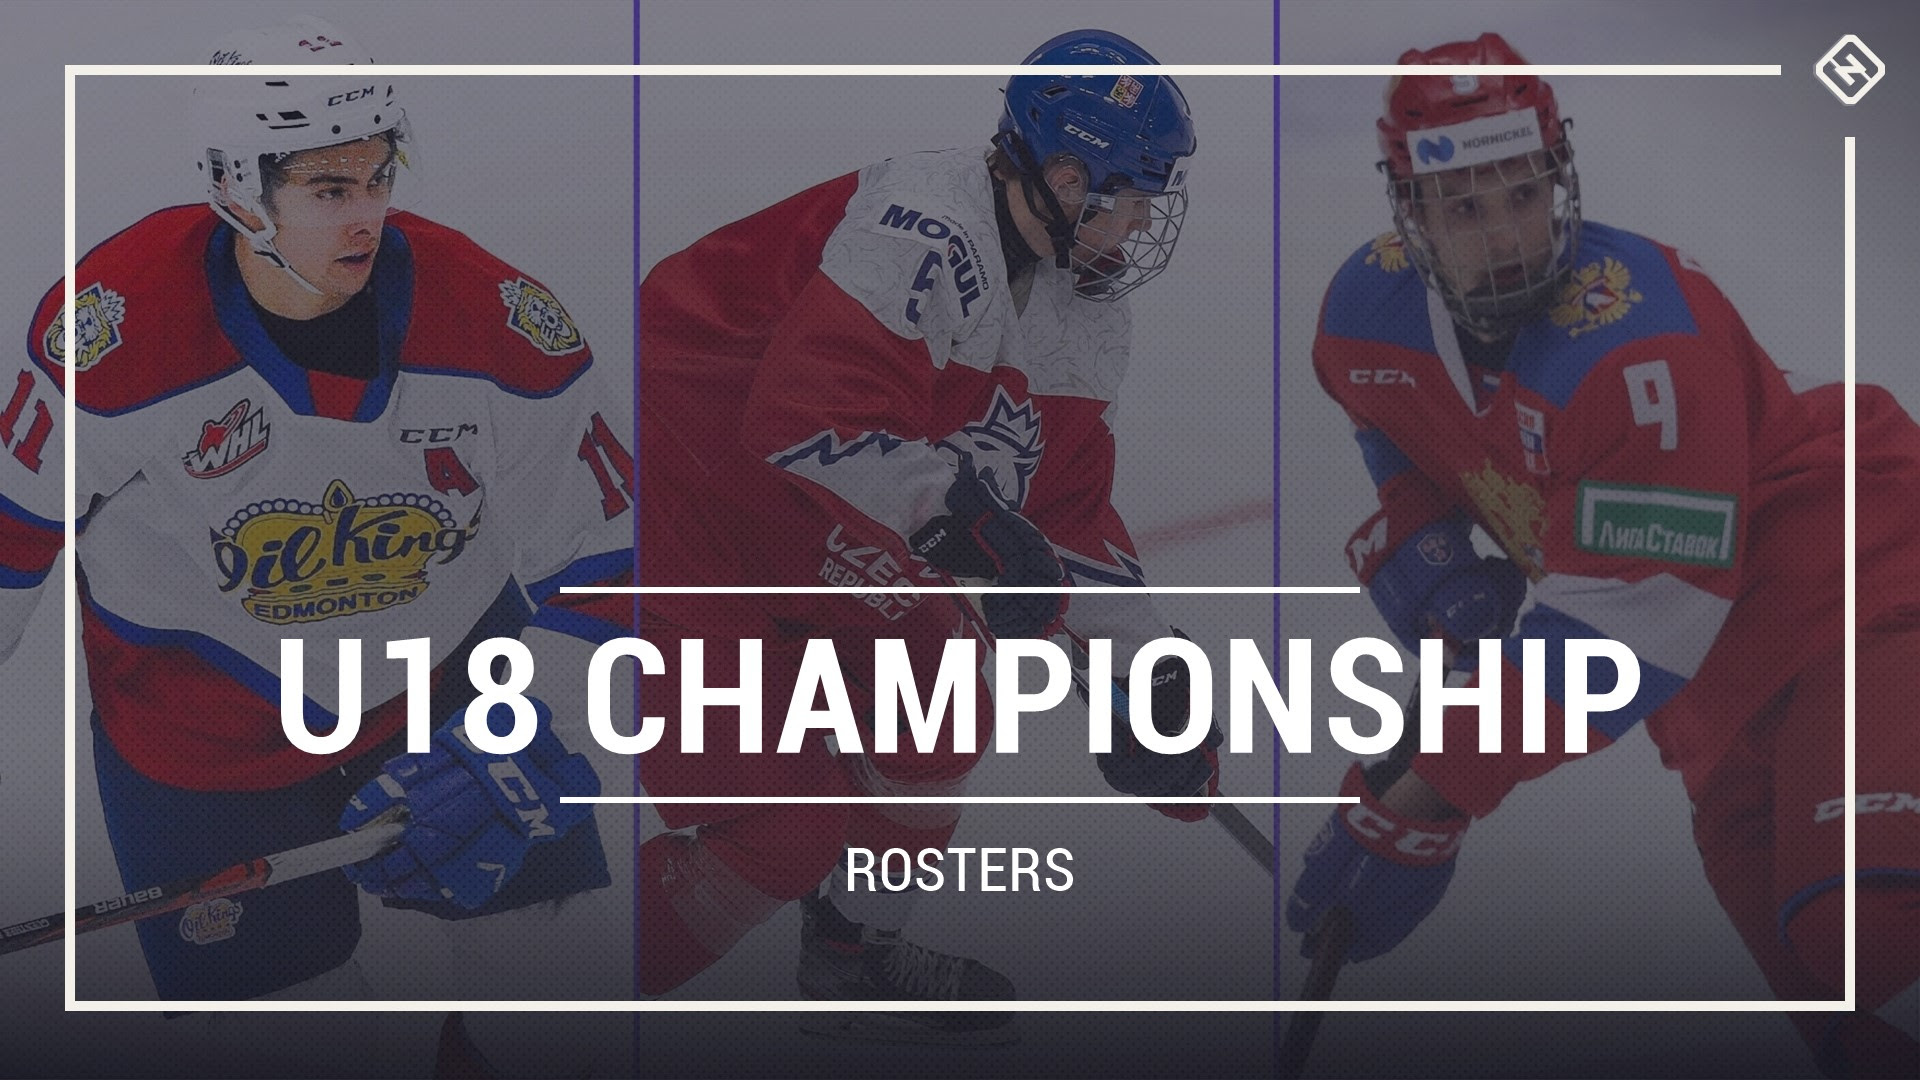 IIHF U18 Men's World Championship 2021: Rosters, NHL draft status, jersey numbers for all 10 teams